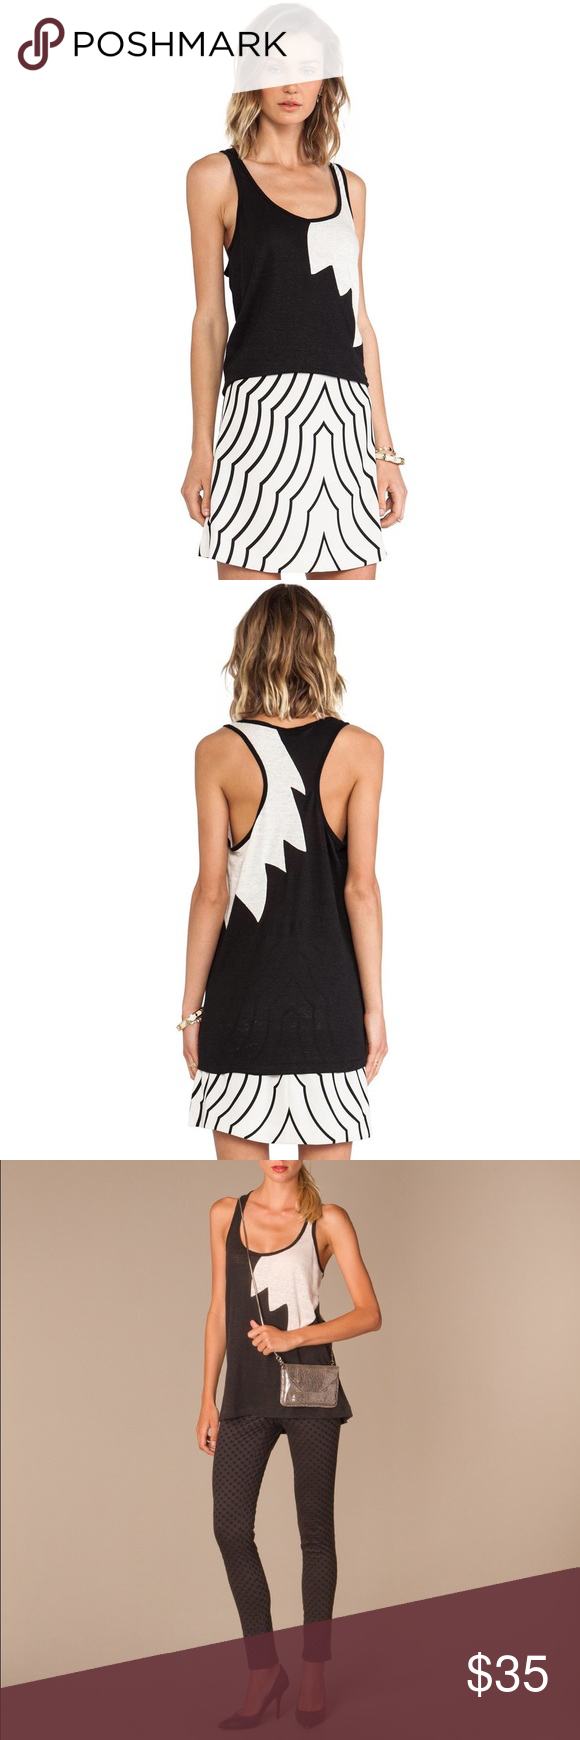 Marc by Marc Jacobs Carmen flame racerback tank! Bold, angled seams create the look of flames on this Marc by Marc Jacobs tank. Loose-cut silhouette with racerback. Whip stitched hem. Fabric: slubbed linen jersey, 100% linen. Worn once, perfect condition! Marc by Marc Jacobs Tops Tank Tops